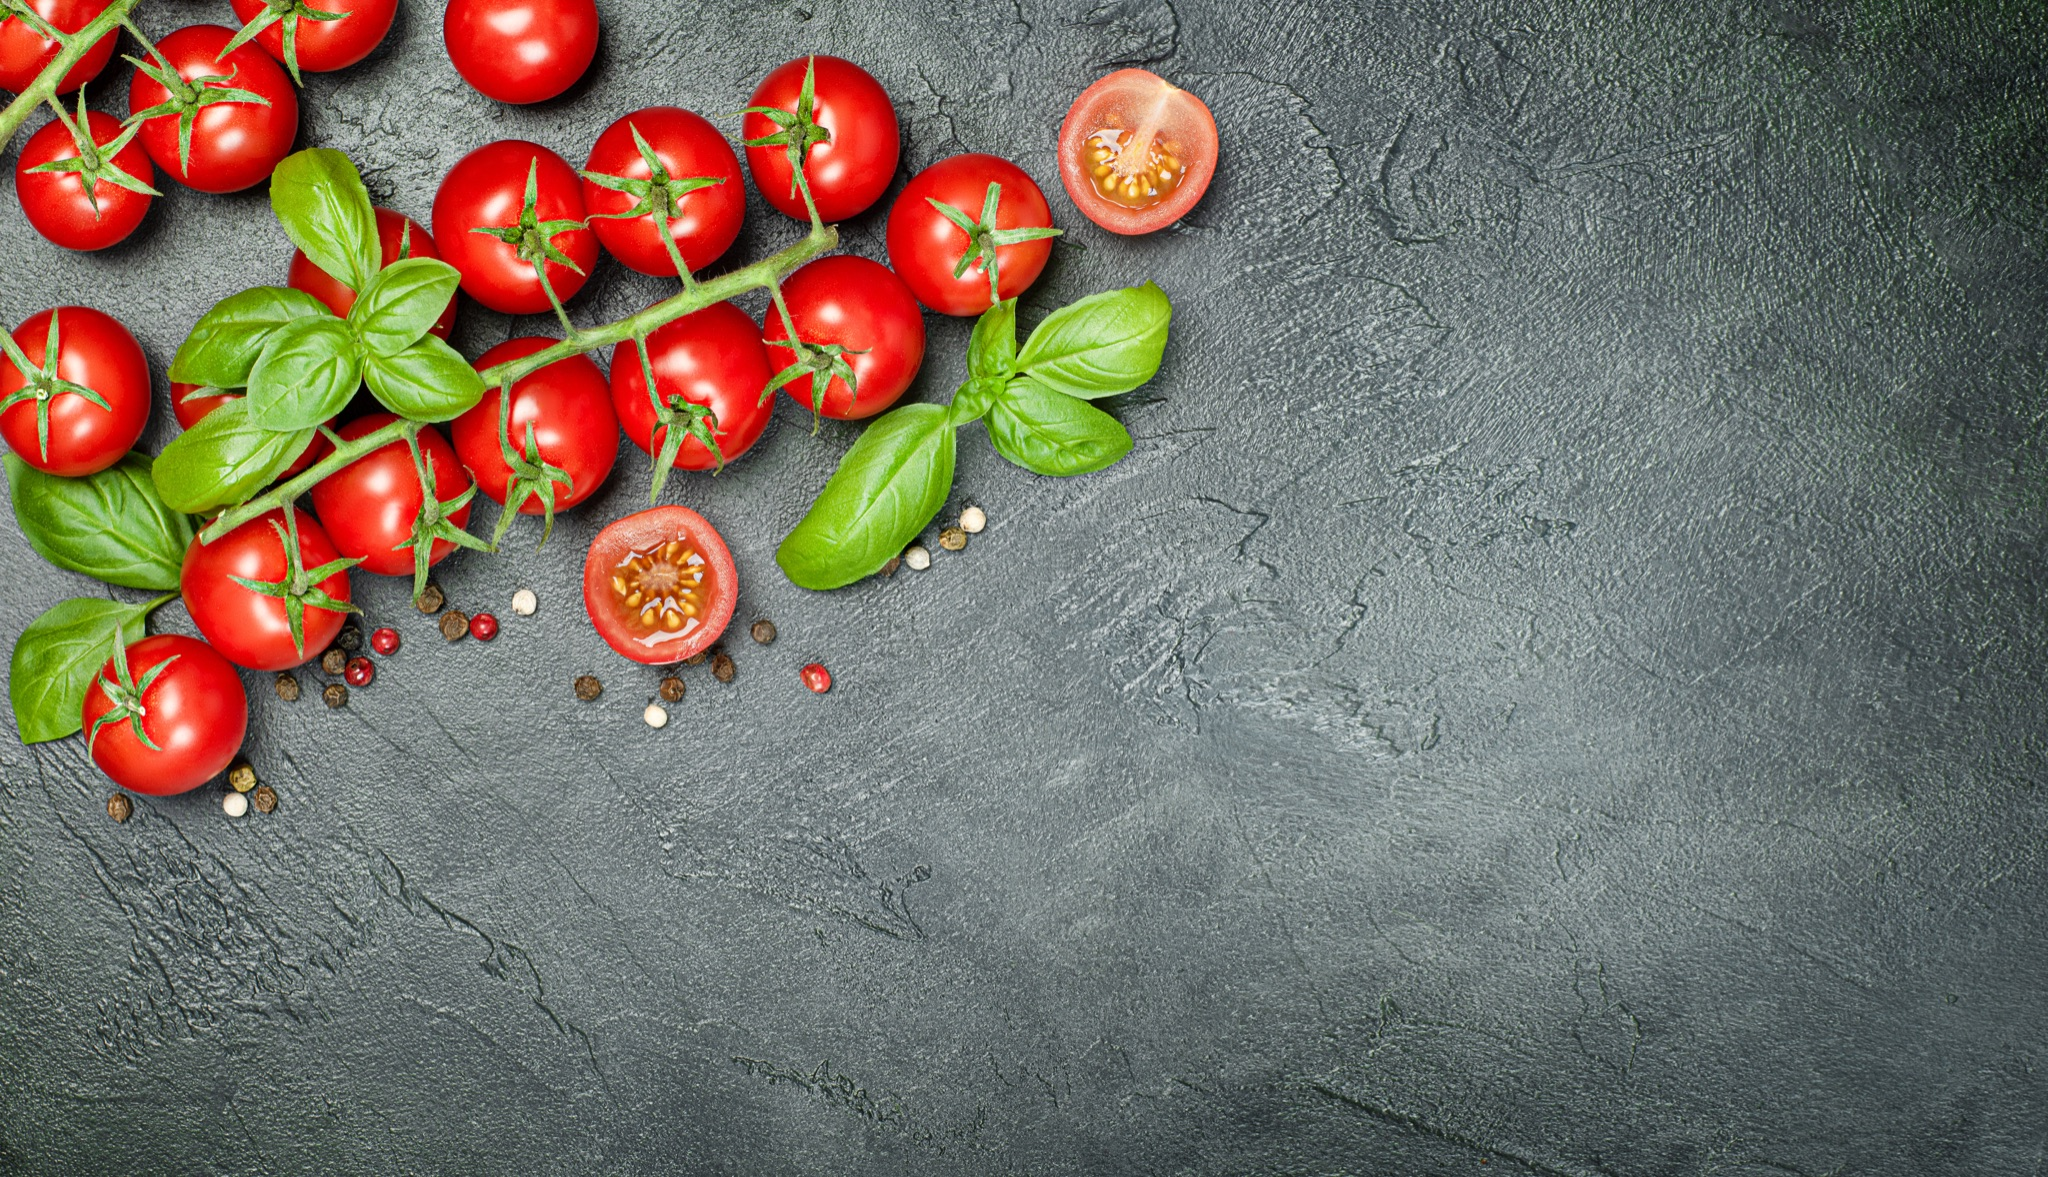 Concrete countertop with cherry tomatoes and basil